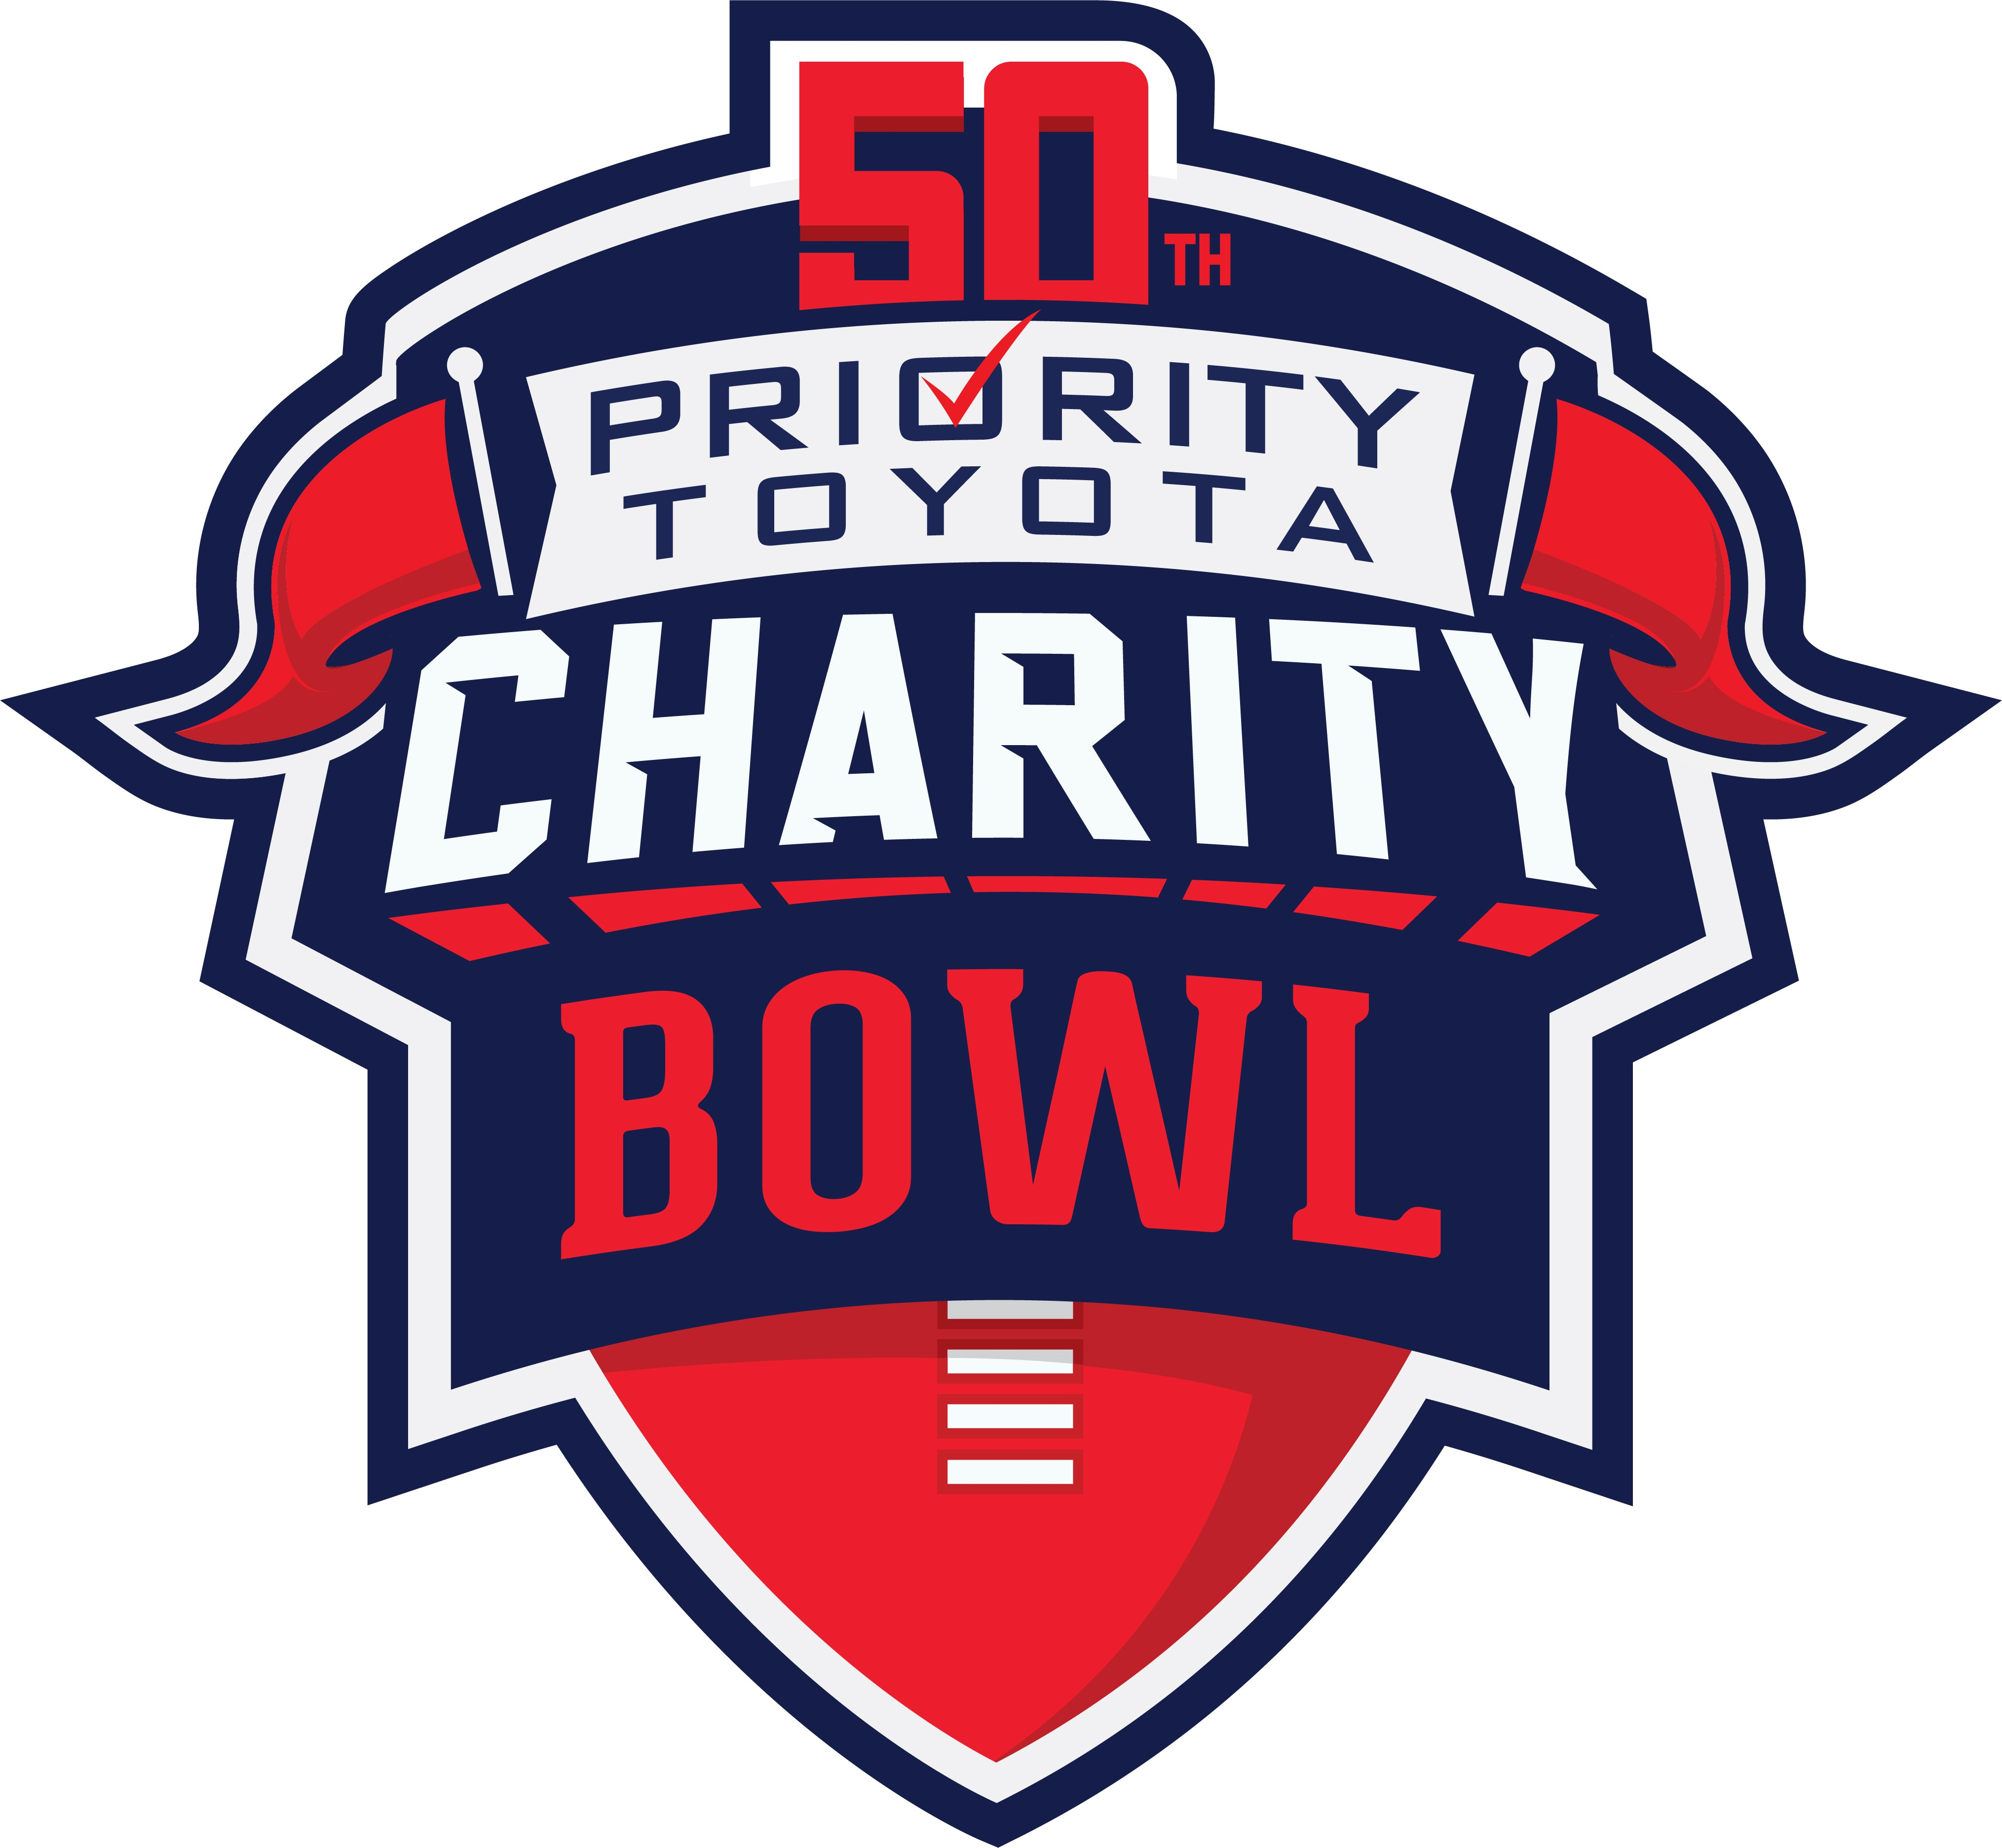 50th Priority Toyota Charity Bowl